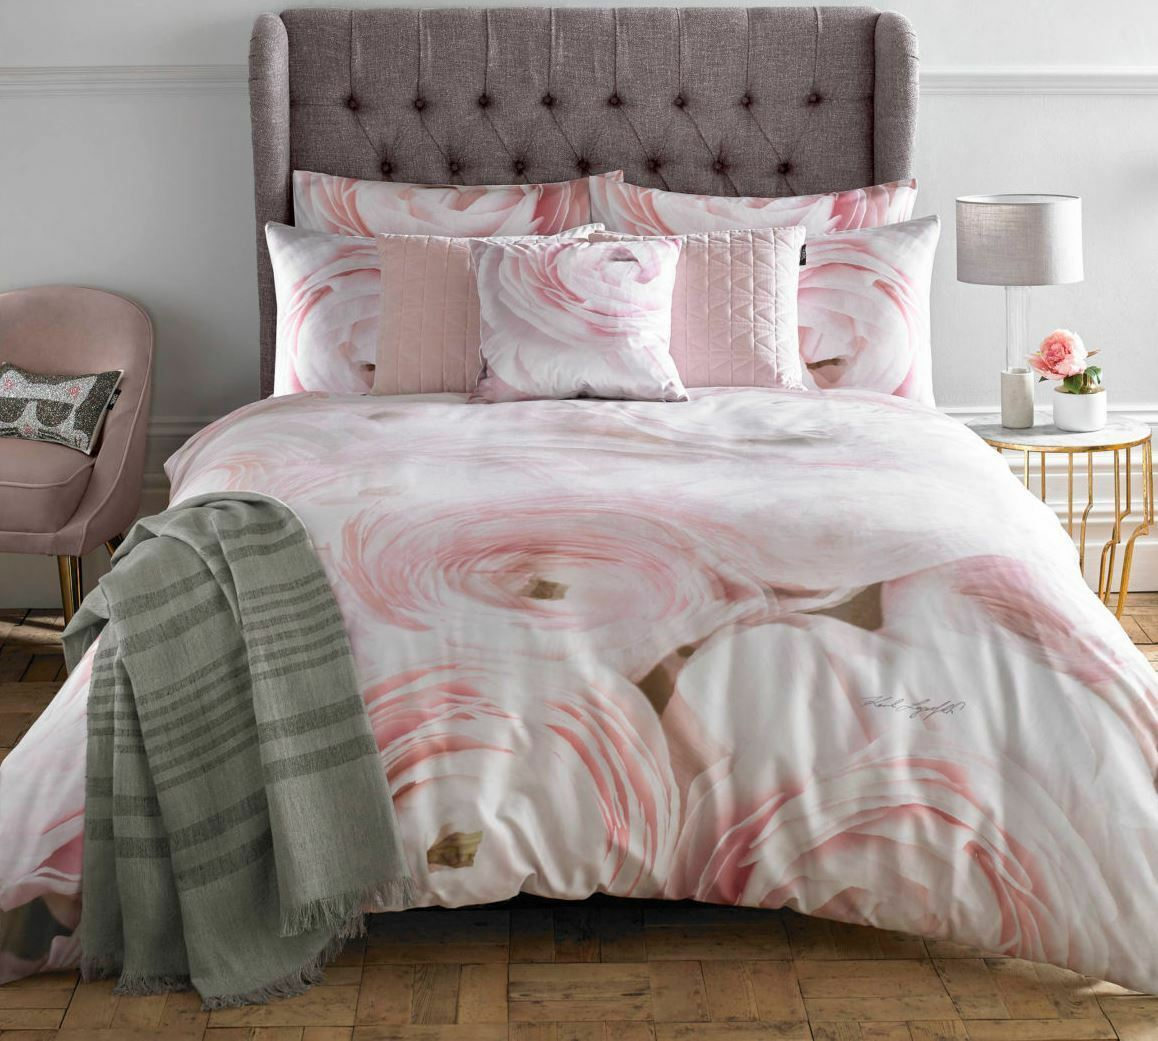 Karl Lagerfeld Rana pink 100% cotton 220 Thread Count Duvet Cover Collection